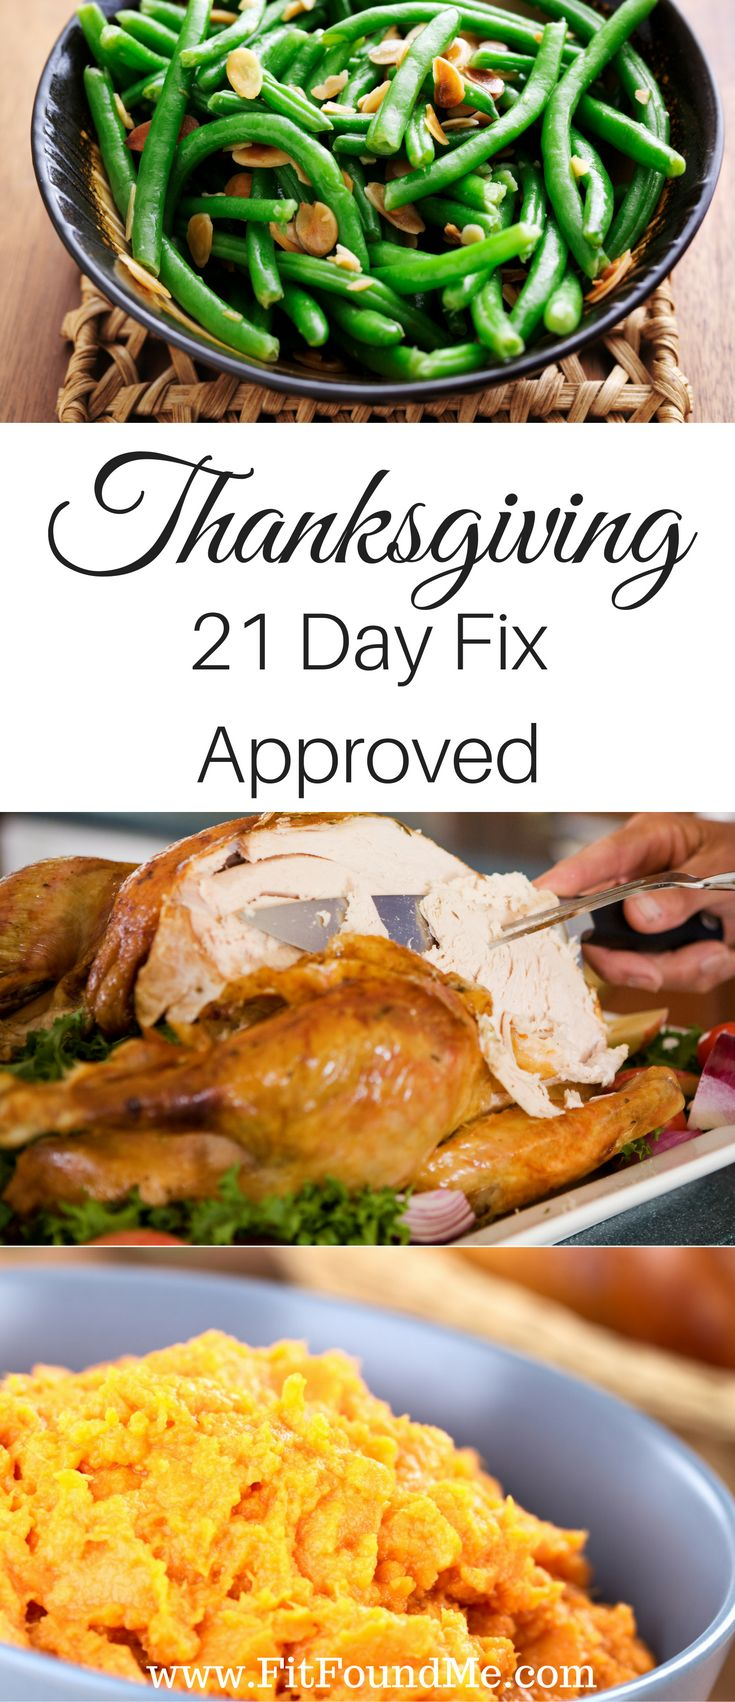 21 Day Fix Approved | Thanksgiving Recipes | Weight Loss | Holiday